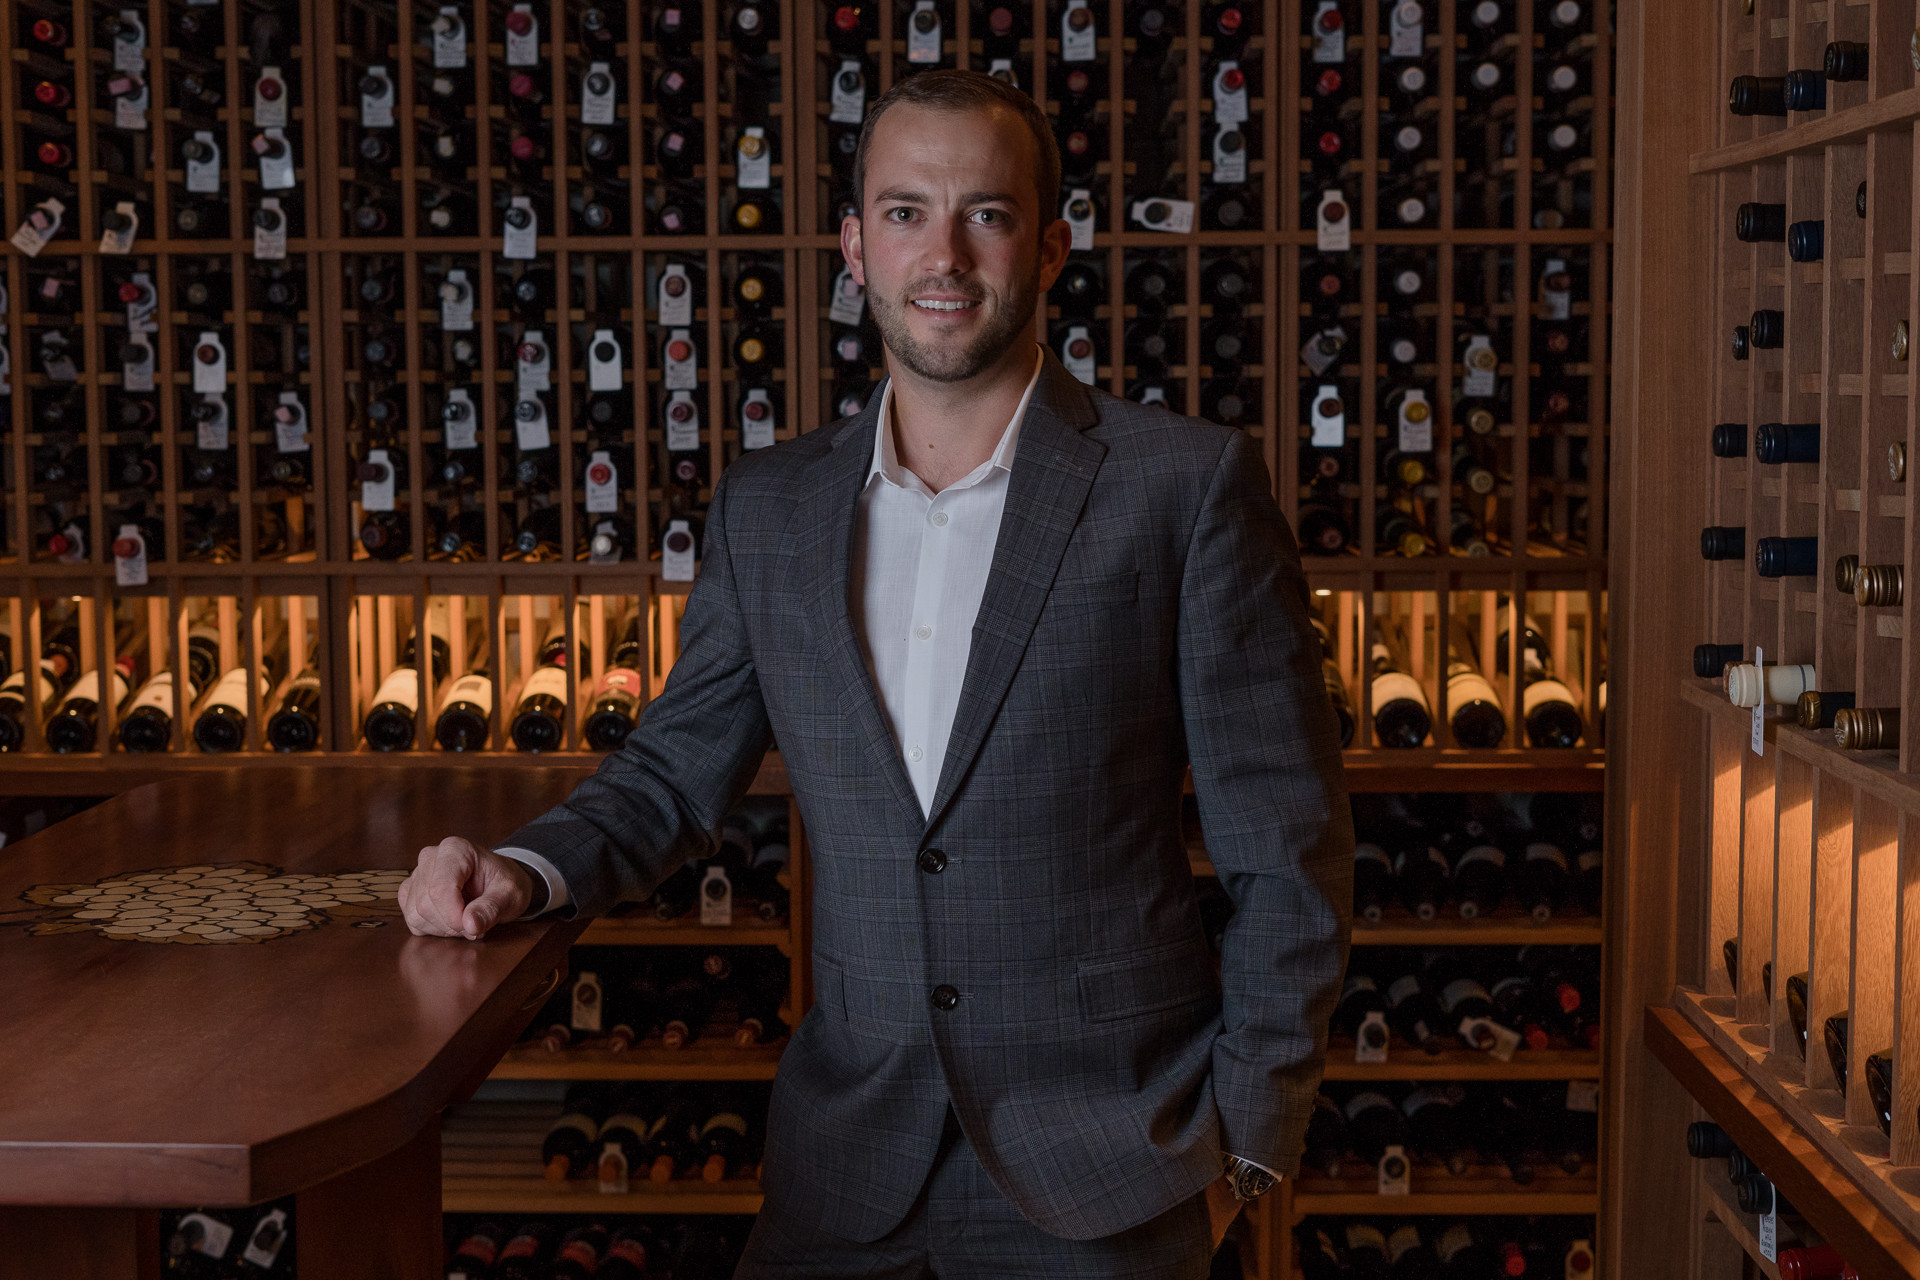 Corporate Headshot for Mike Sheret, Medium photograph Wine Cellar